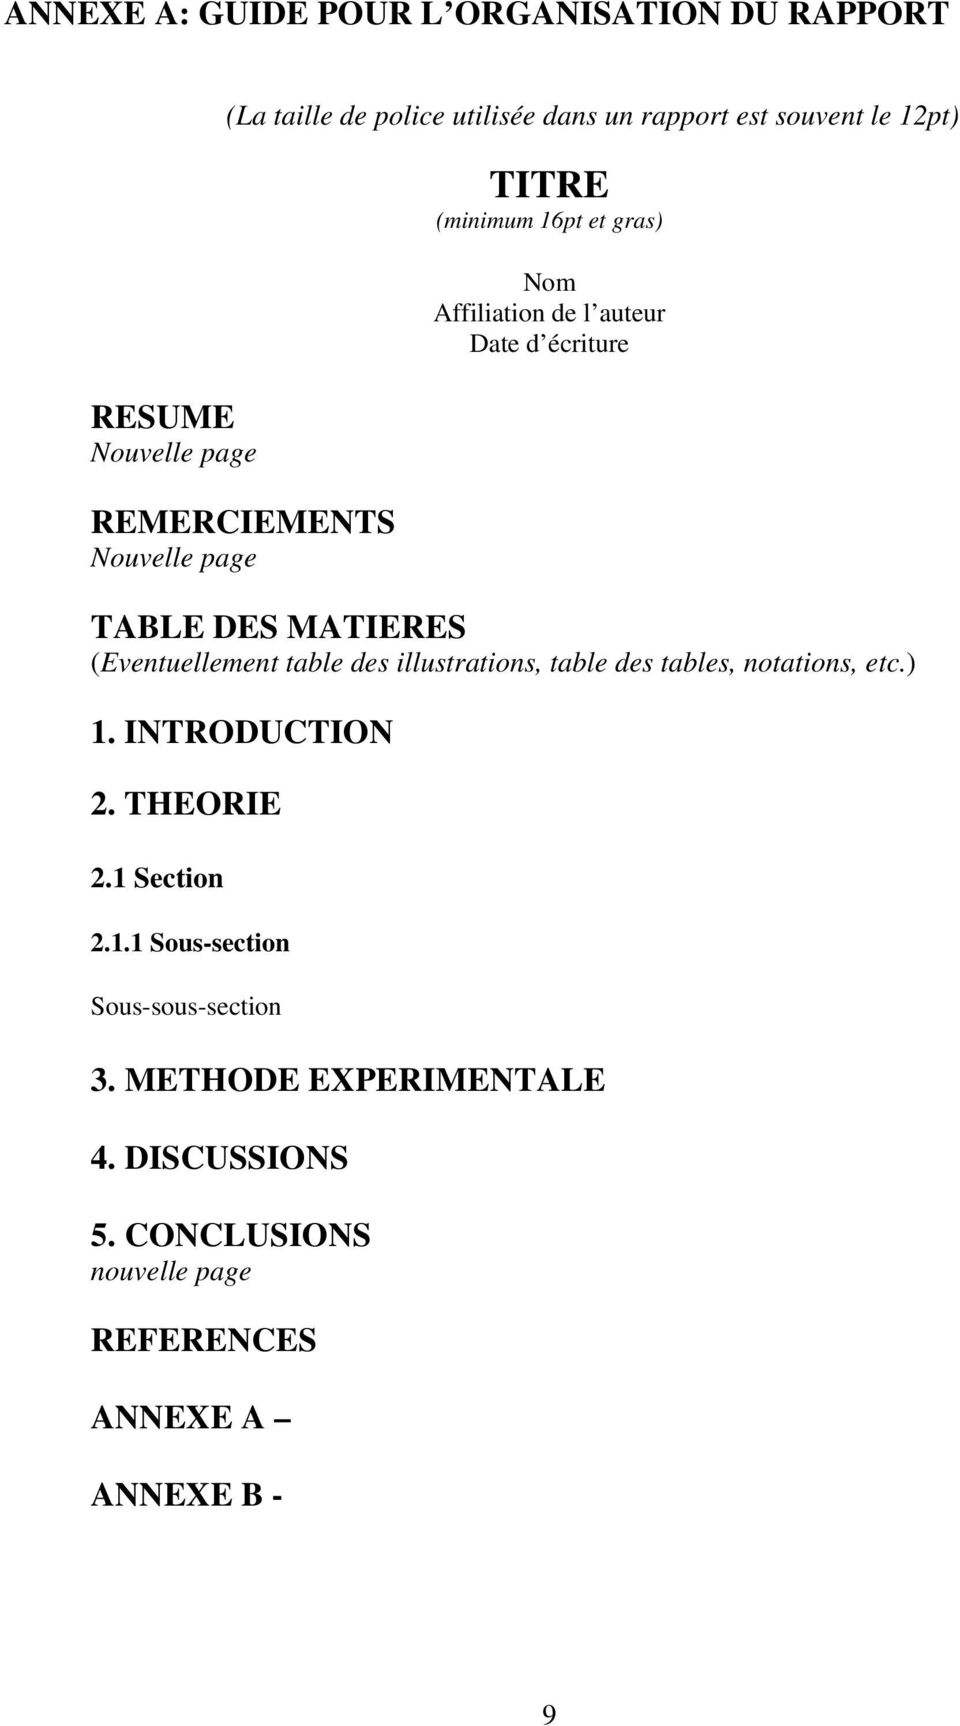 MATIERES (Eventuellement table des illustrations, table des tables, notations, etc.) 1. INTRODUCTION 2. THEORIE 2.1 Section 2.